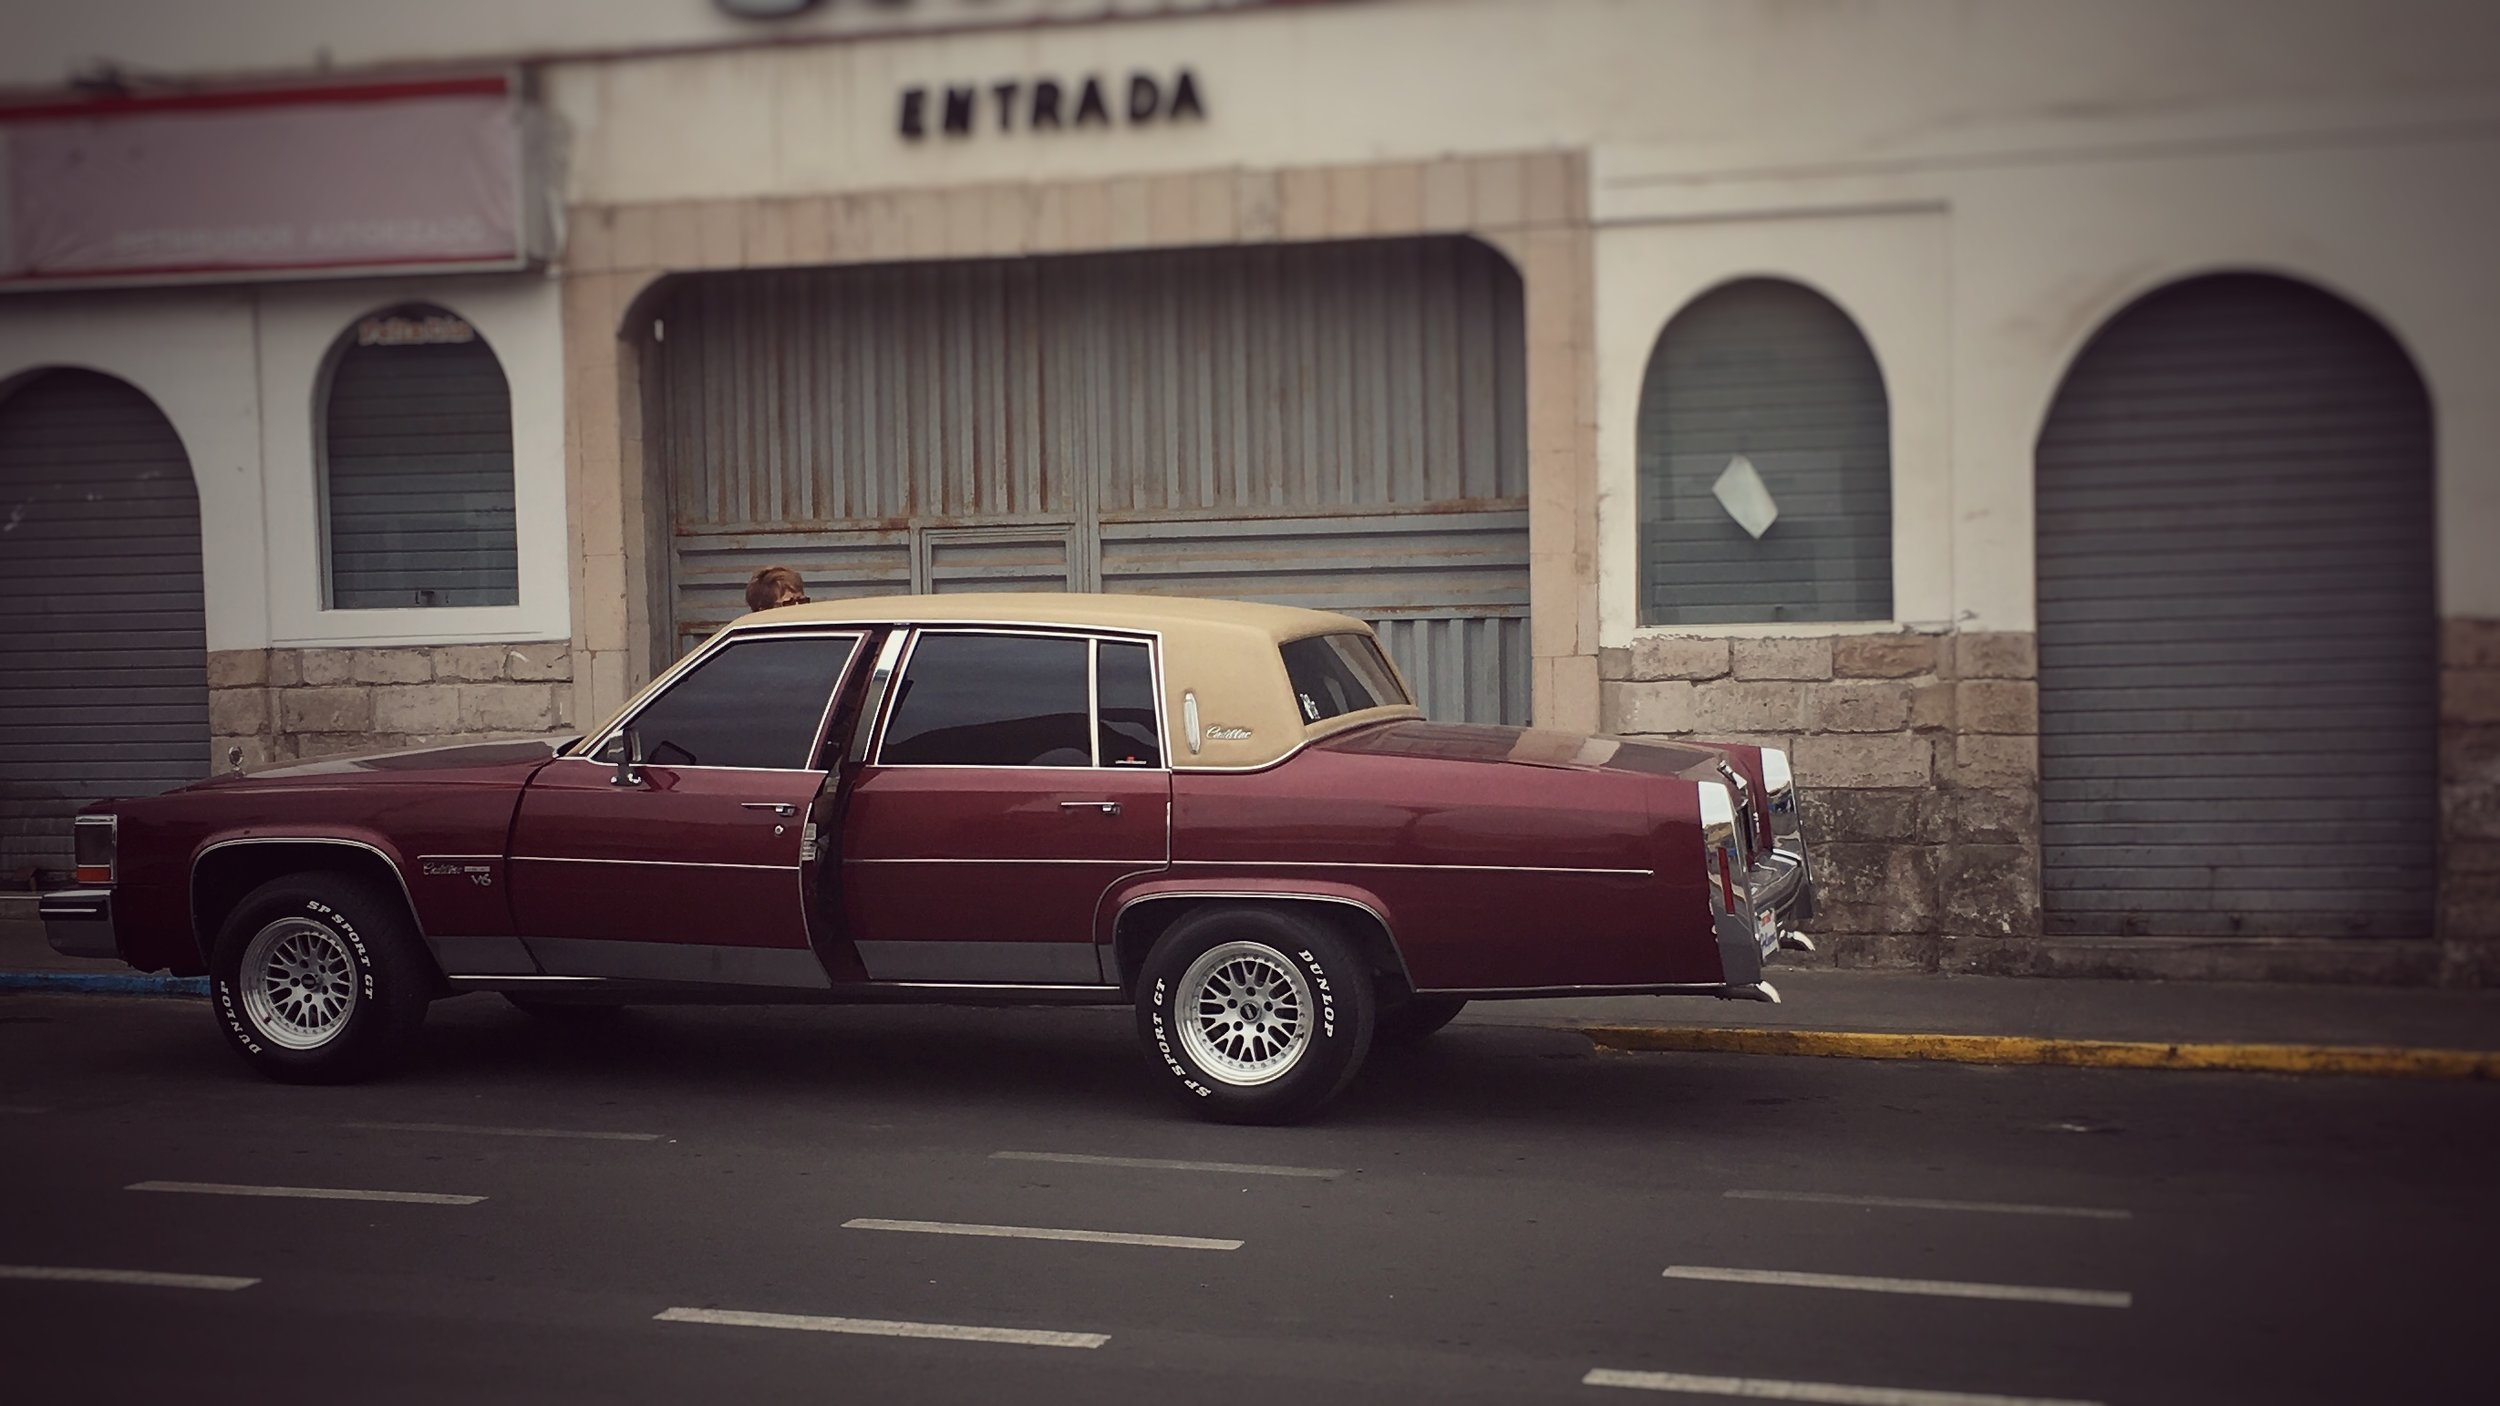 70's & 80's cars proliferate, most much more beaten up : Tacna